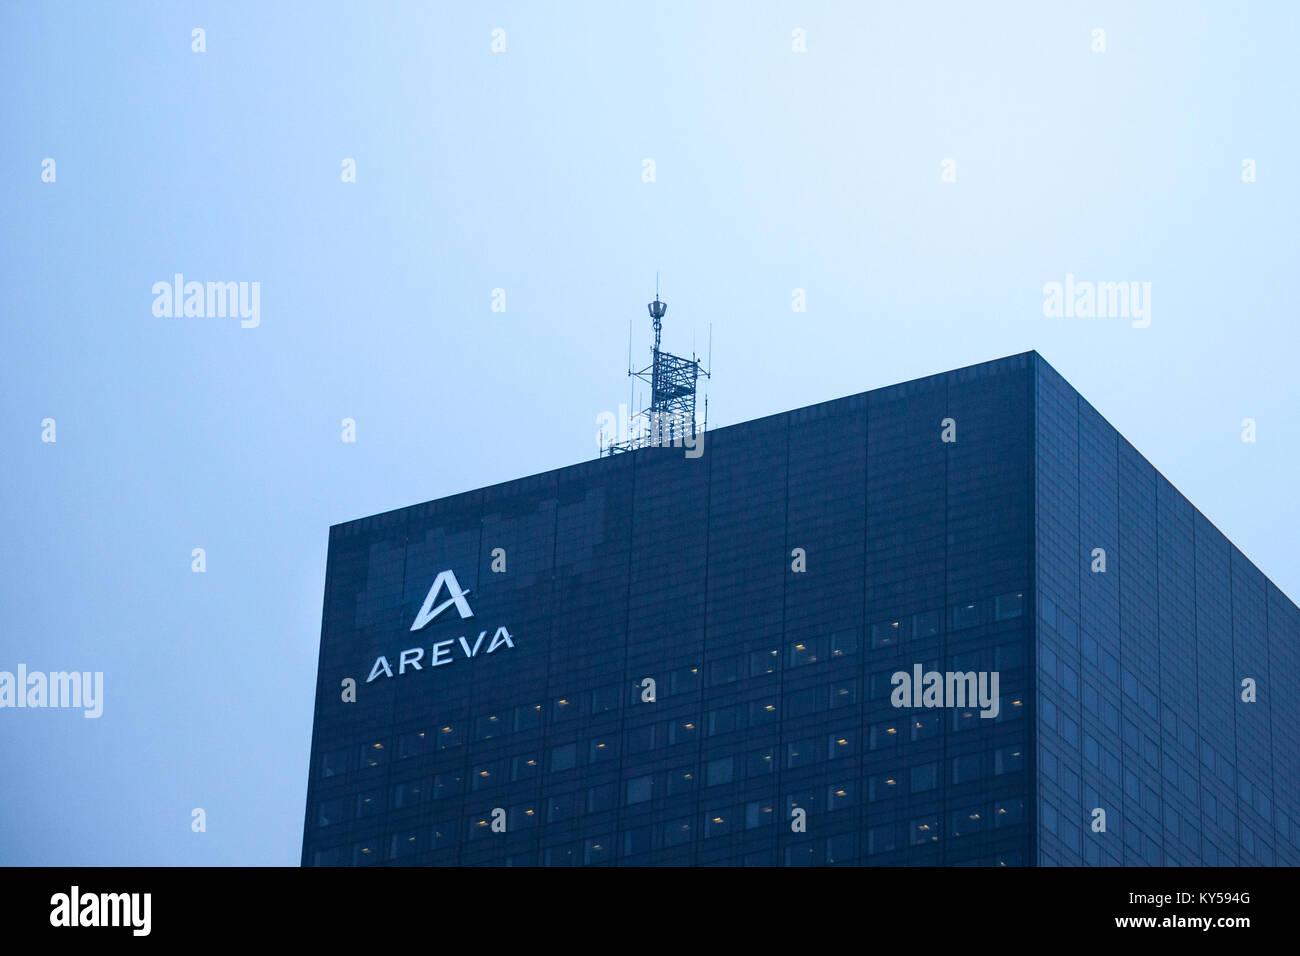 PARIS, FRANCE - DECEMBER 20, 2017: Areva logo on their main office in La Defense district. Areva is a French multinational - Stock Image